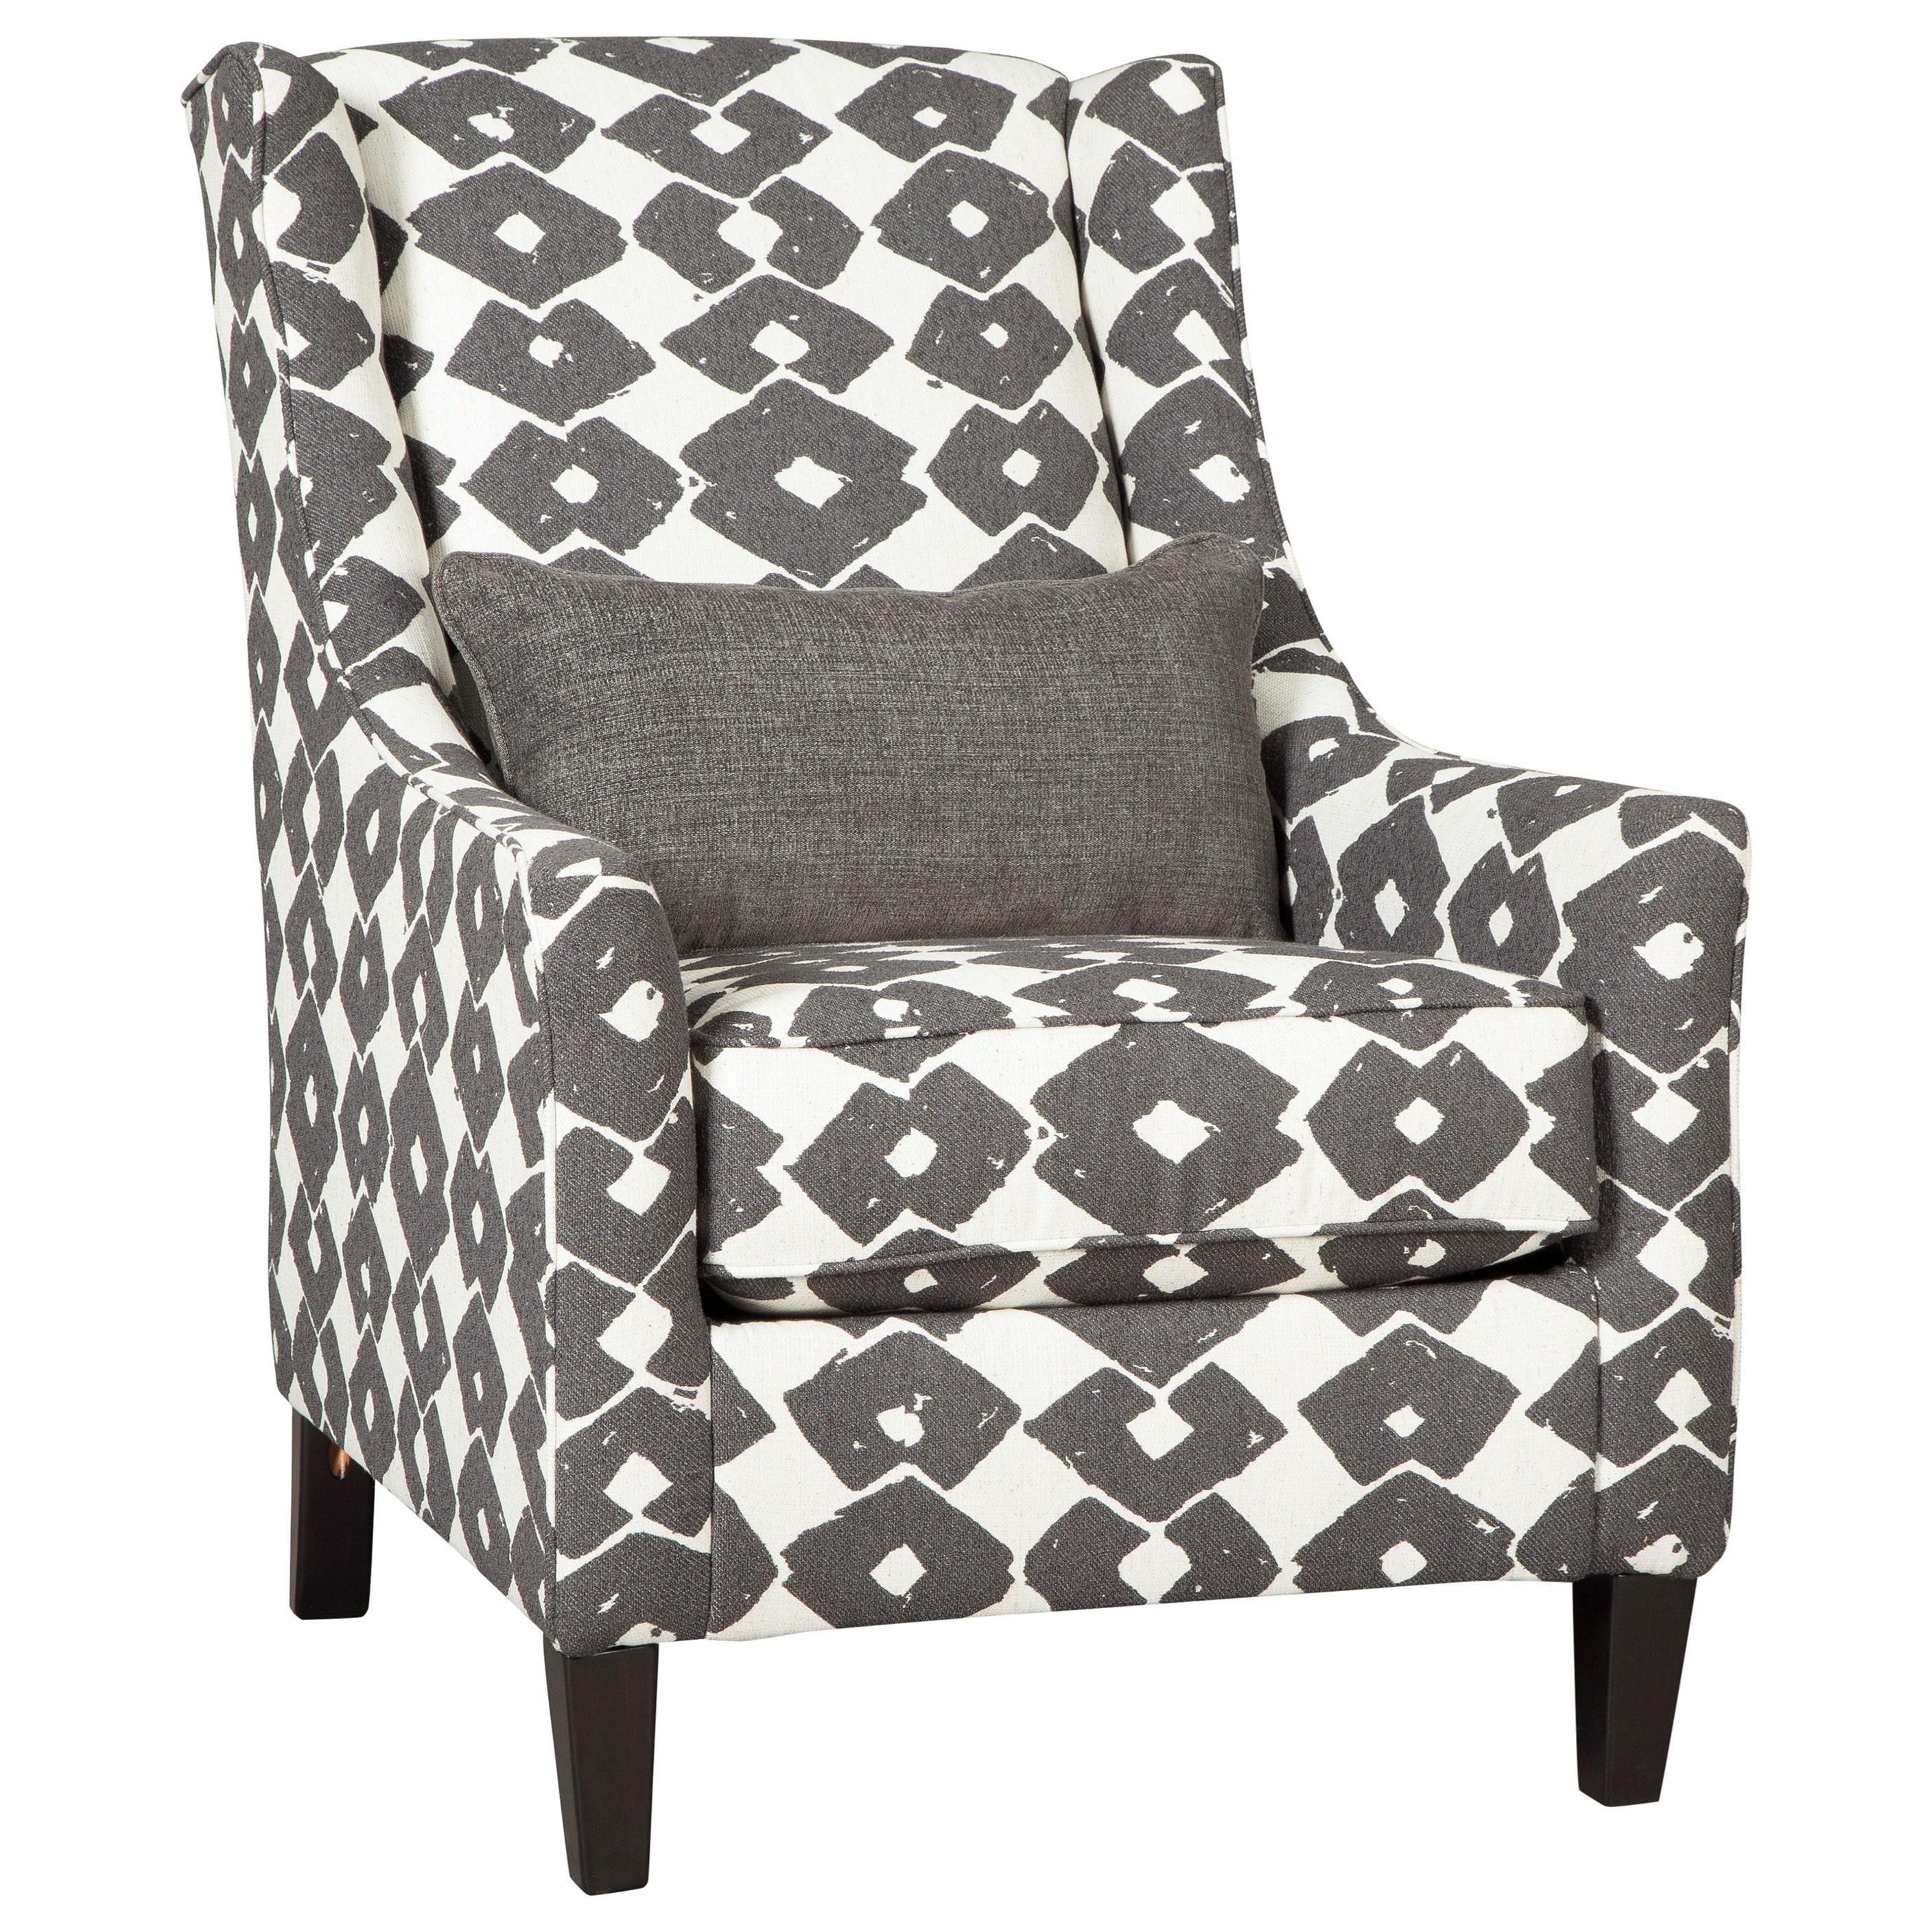 Trend Ashley Furniture Accent Chairs Property